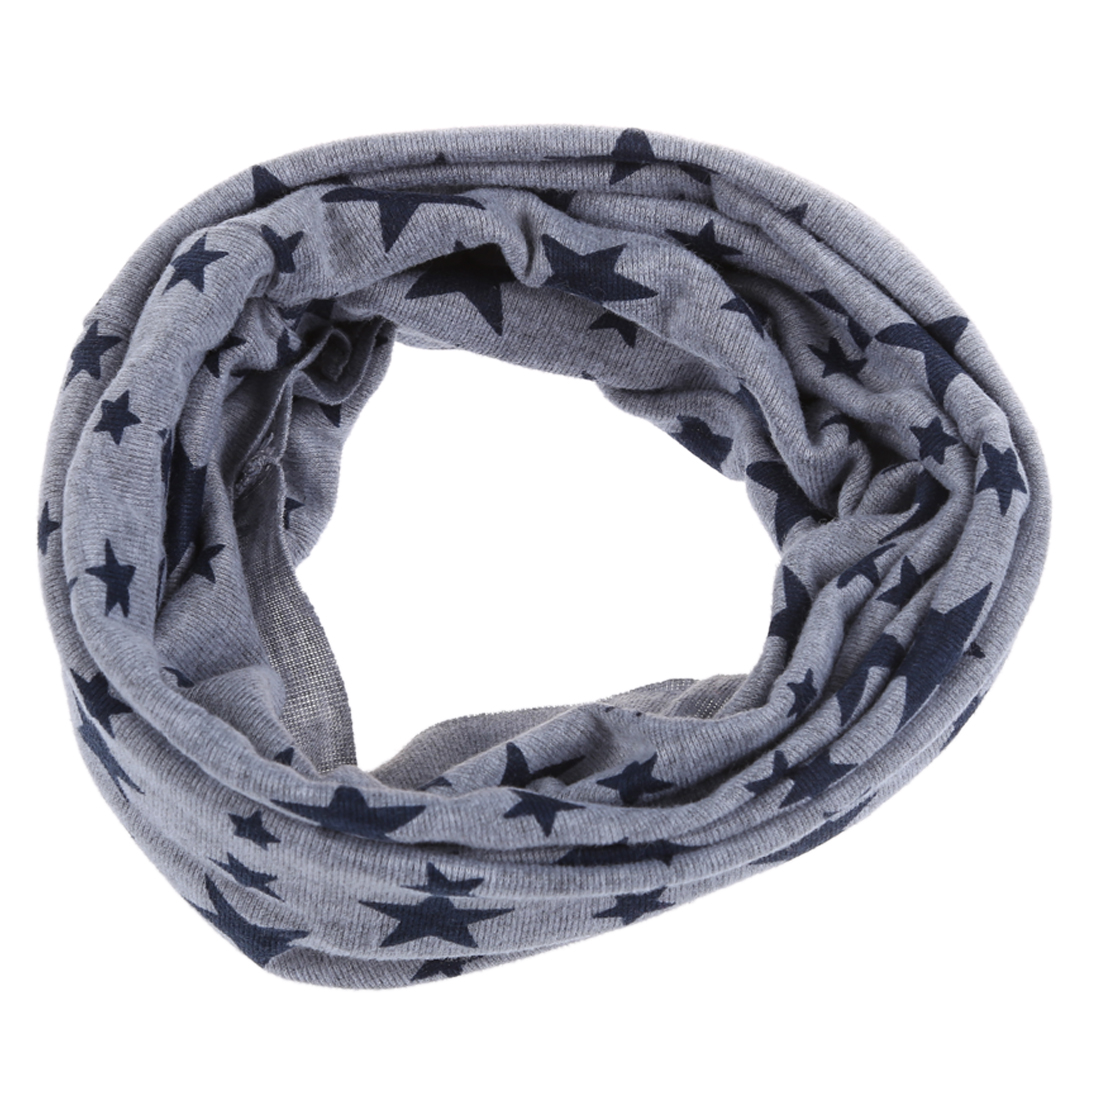 Unisex Babies Loop Wraps Five-pointed Star Knitted Wraps Winter Shawl Snood Neck